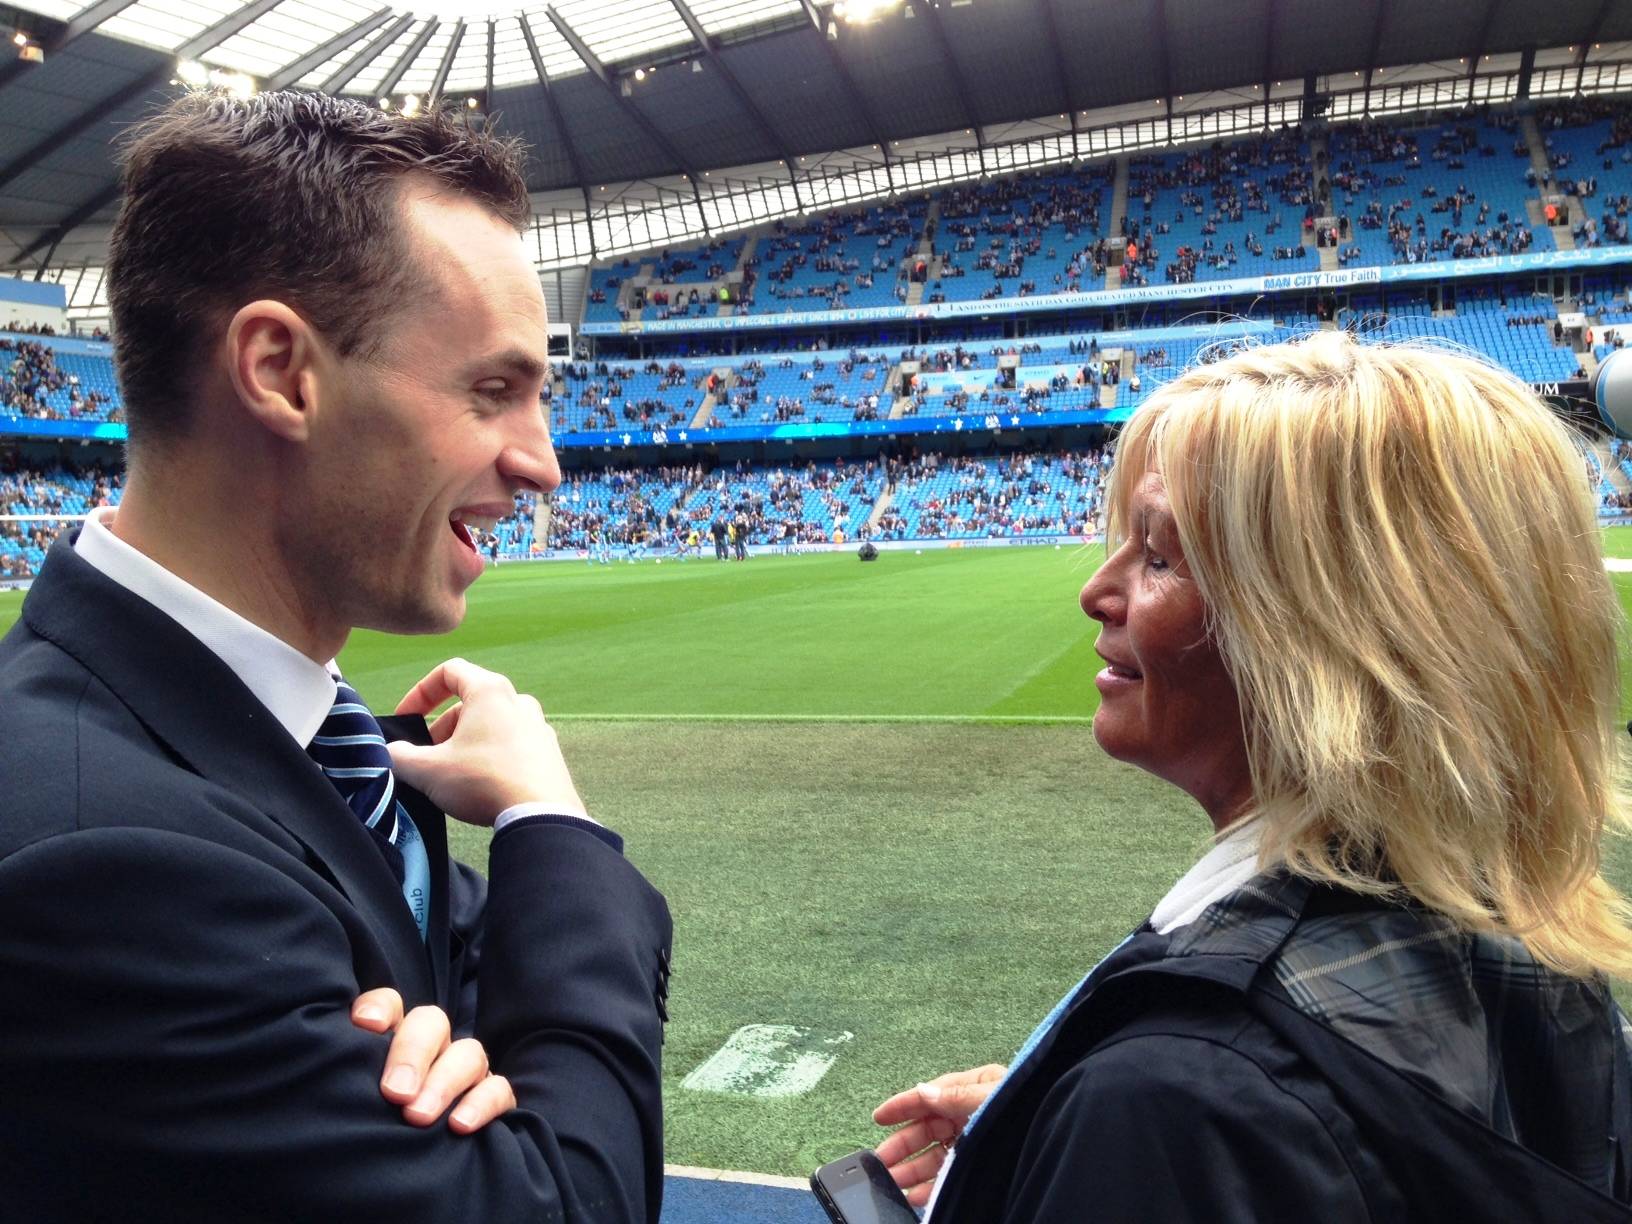 Pre-match chat - City's David Smith and Debi discuss the pitchside experience.